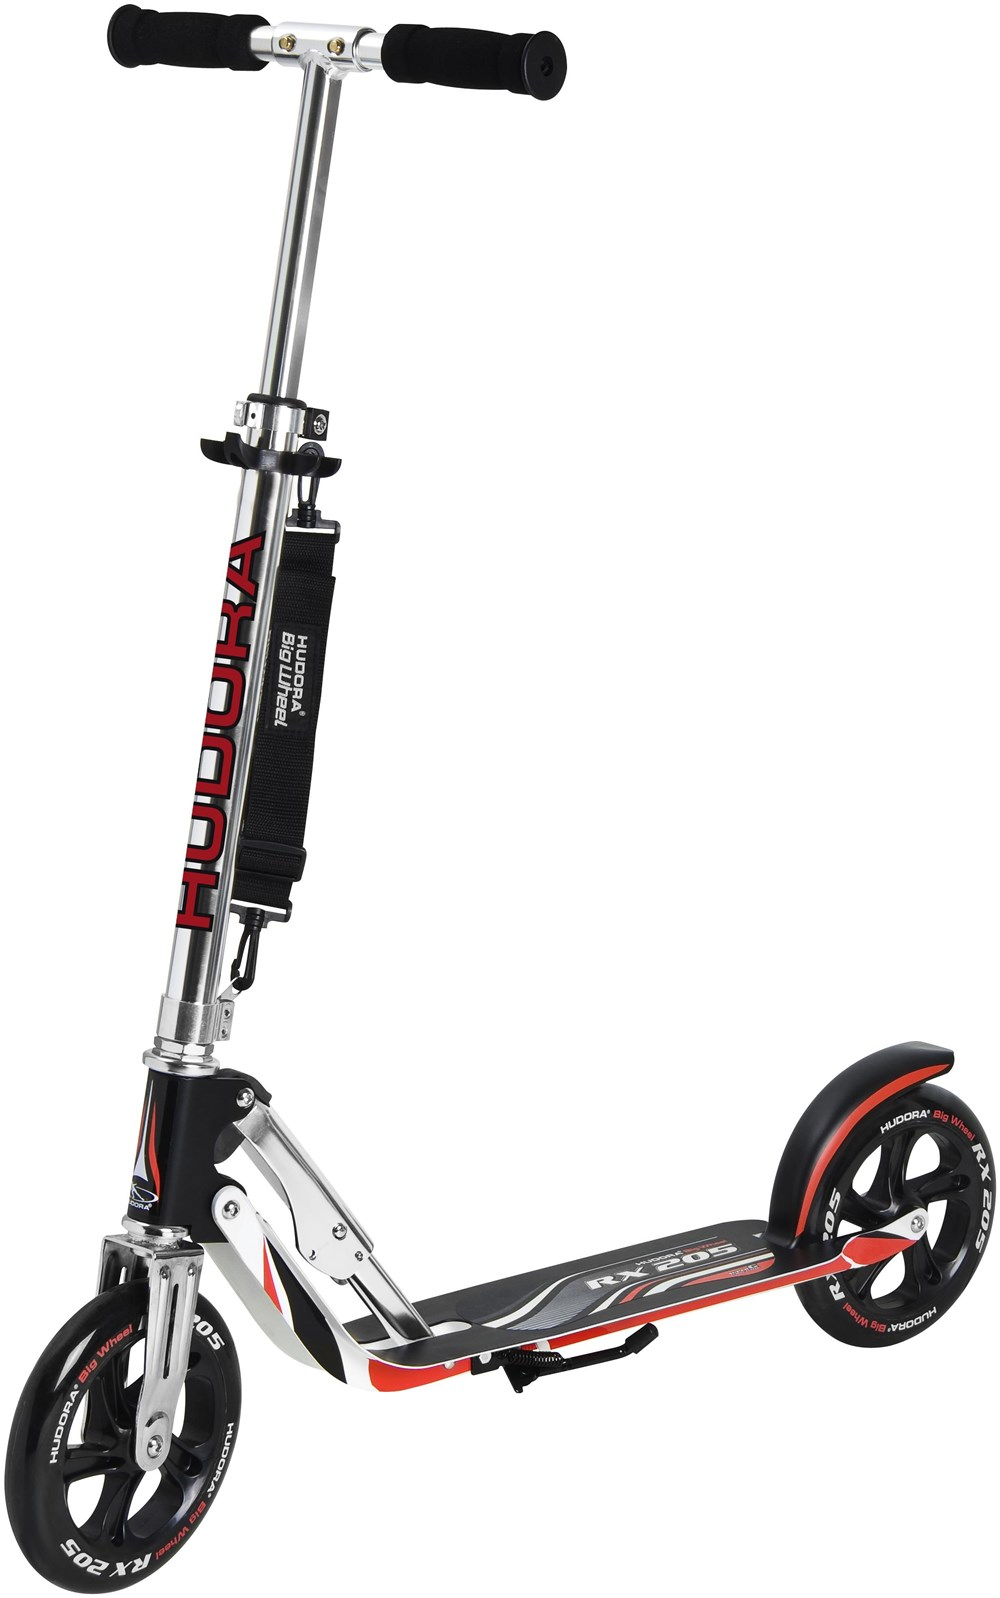 Hudora Scooter Big Wheel RX 205 Roller schwarz/rot 14724